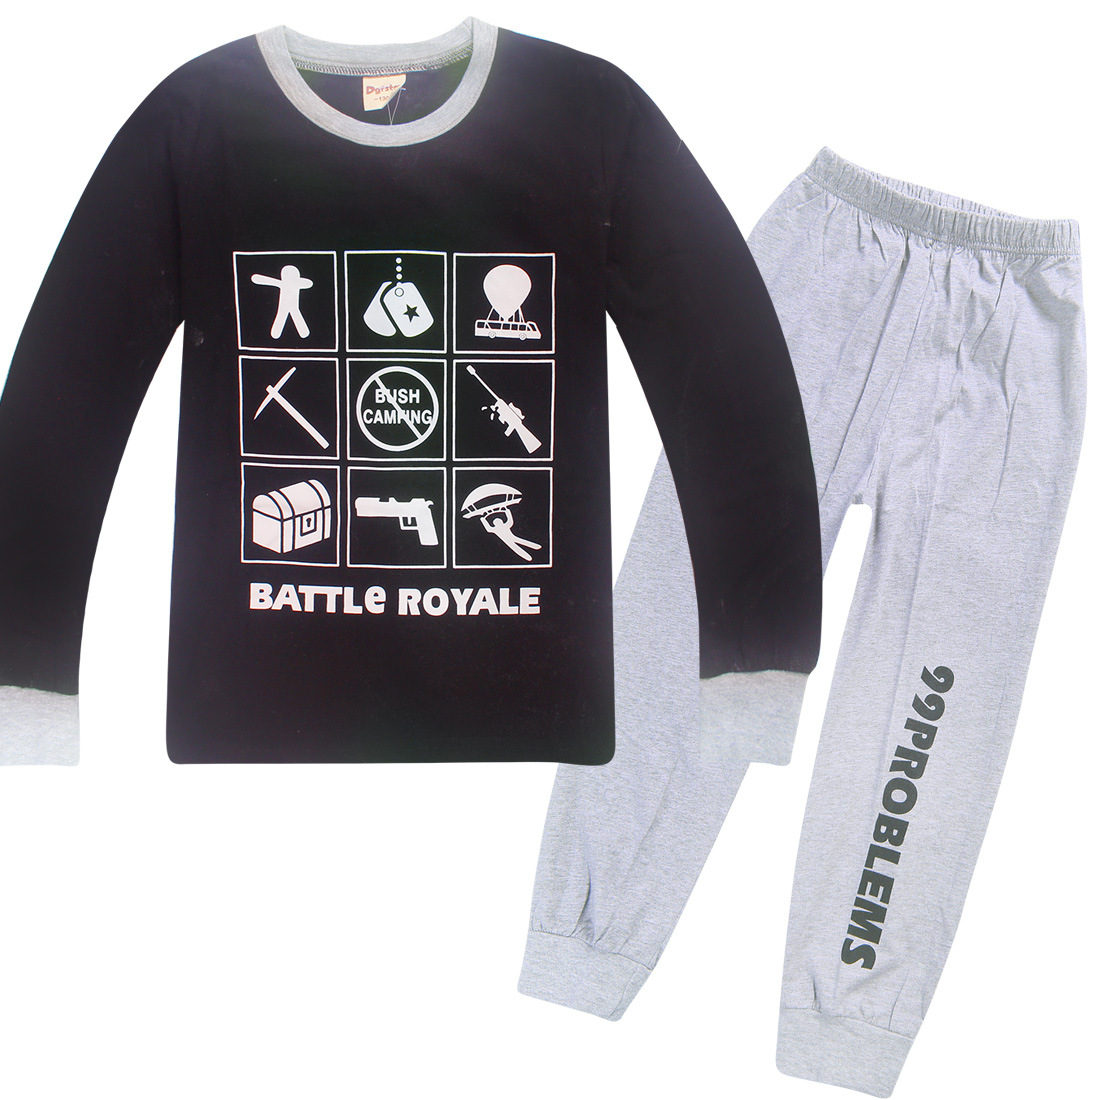 """Boys Children Fortnite Suit """"BATTLE ROYALE"""" Graphic Set Casual Long Sleeve Tee Shirt And Pants"""